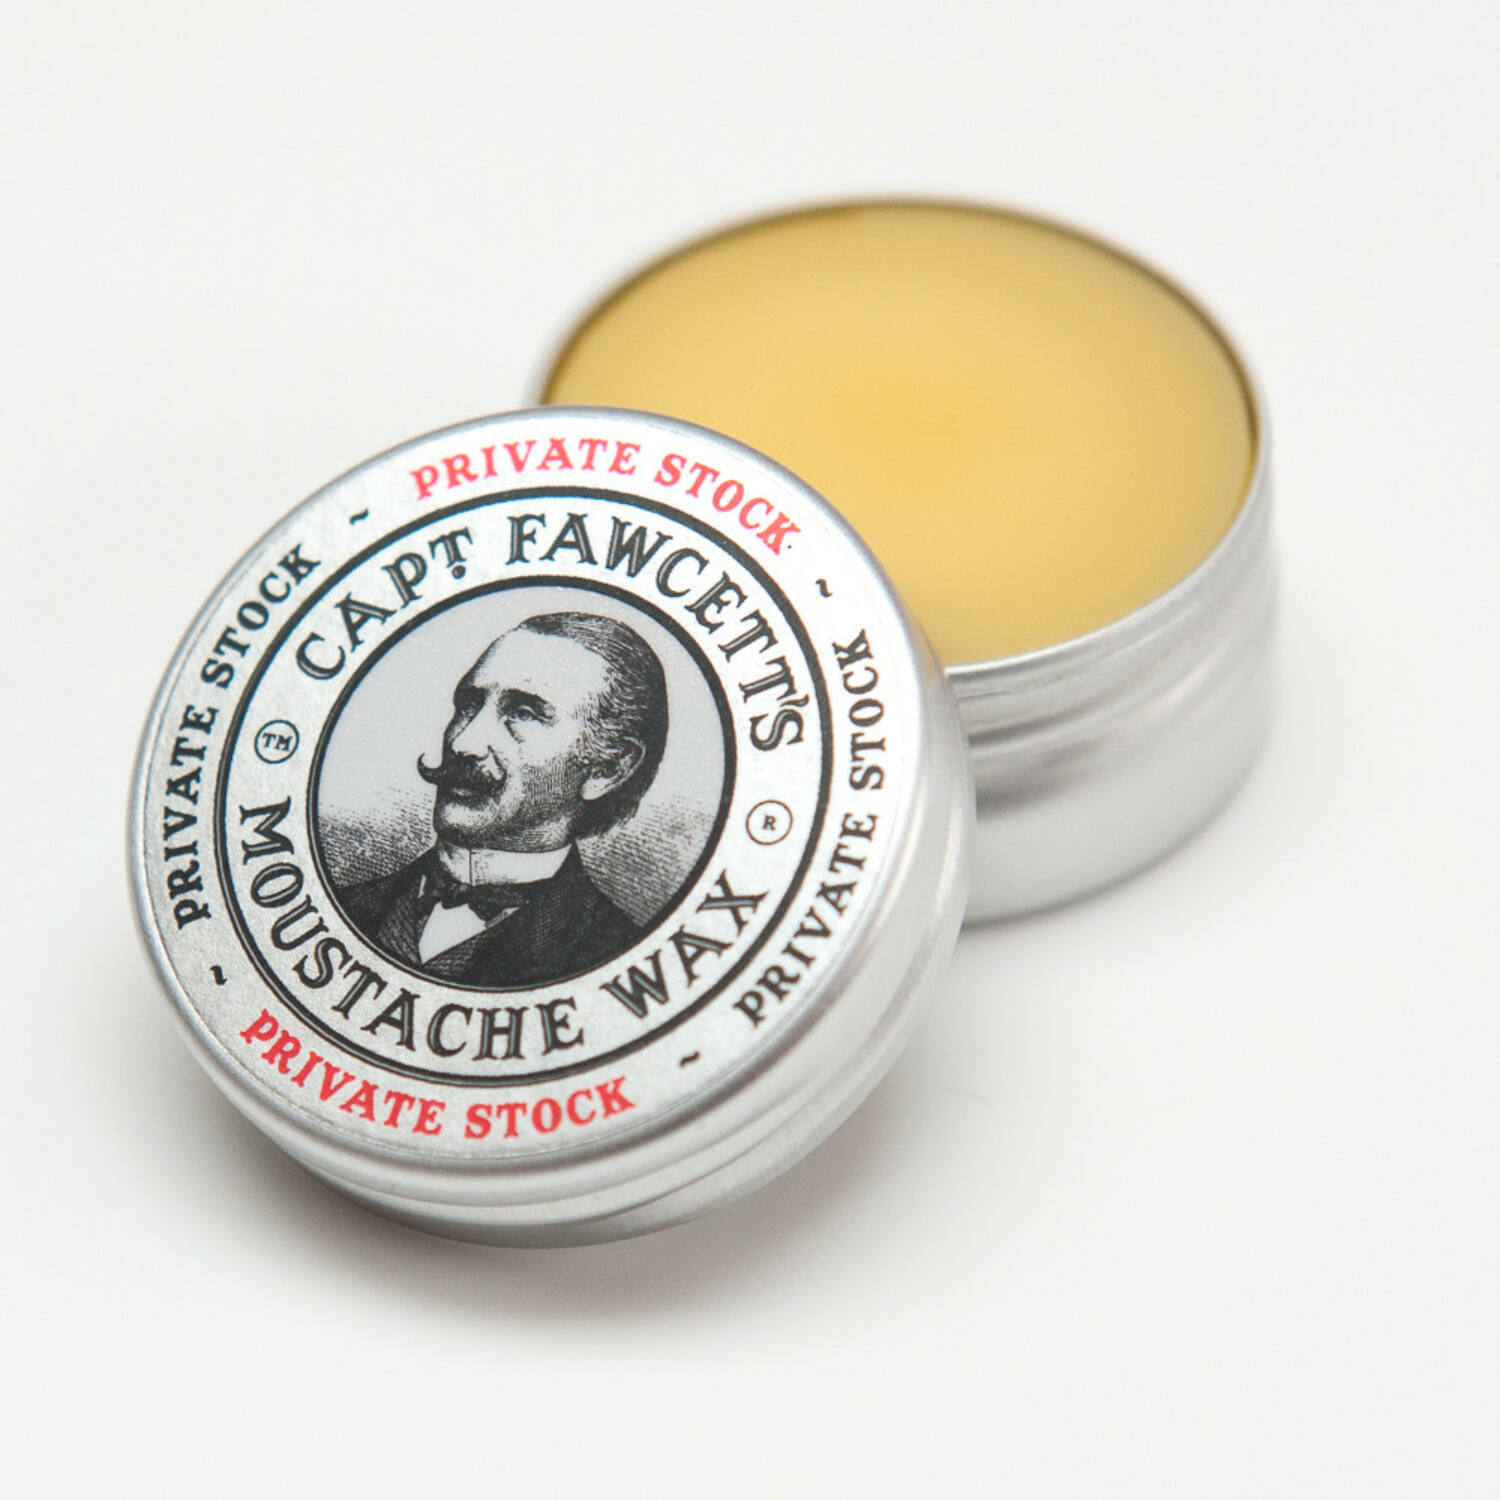 Captain Fawcett Private Stock bajuszwax 15ml